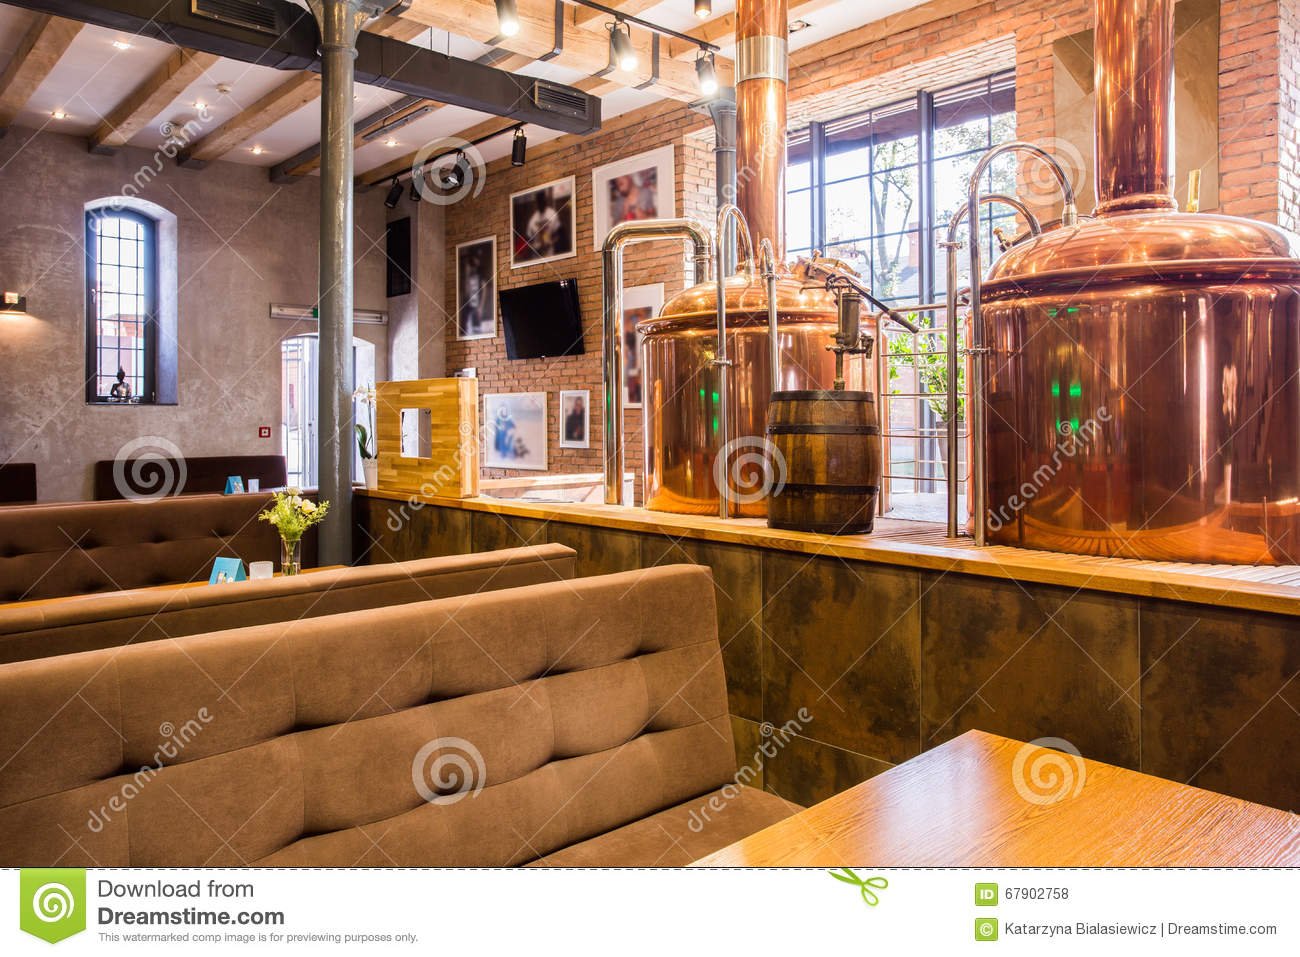 863 Restaurant Industrial Decor Photos Free Royalty Free Stock Photos From Dreamstime